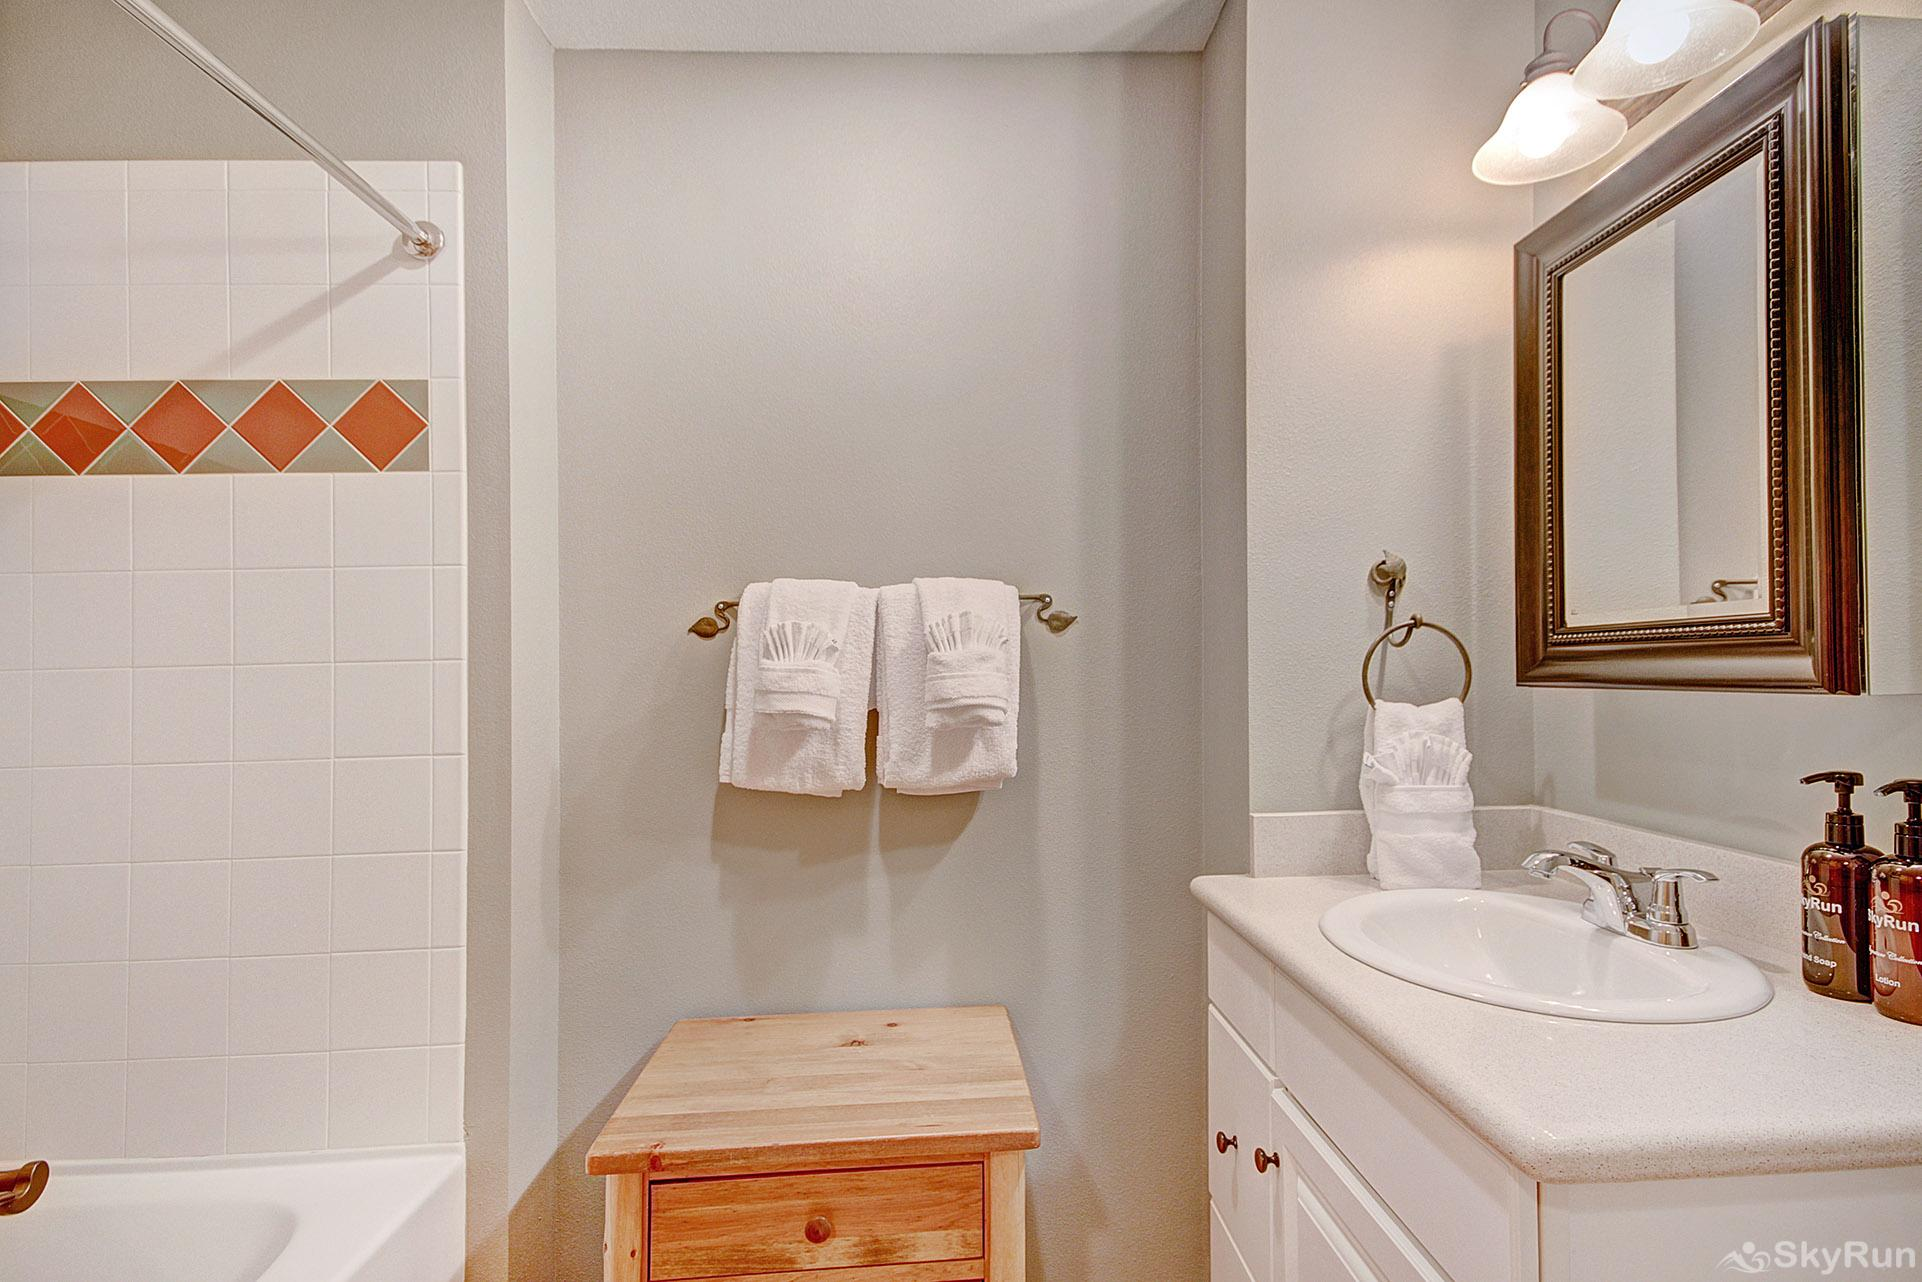 TM325 Tucker Mountain Second Bathroom